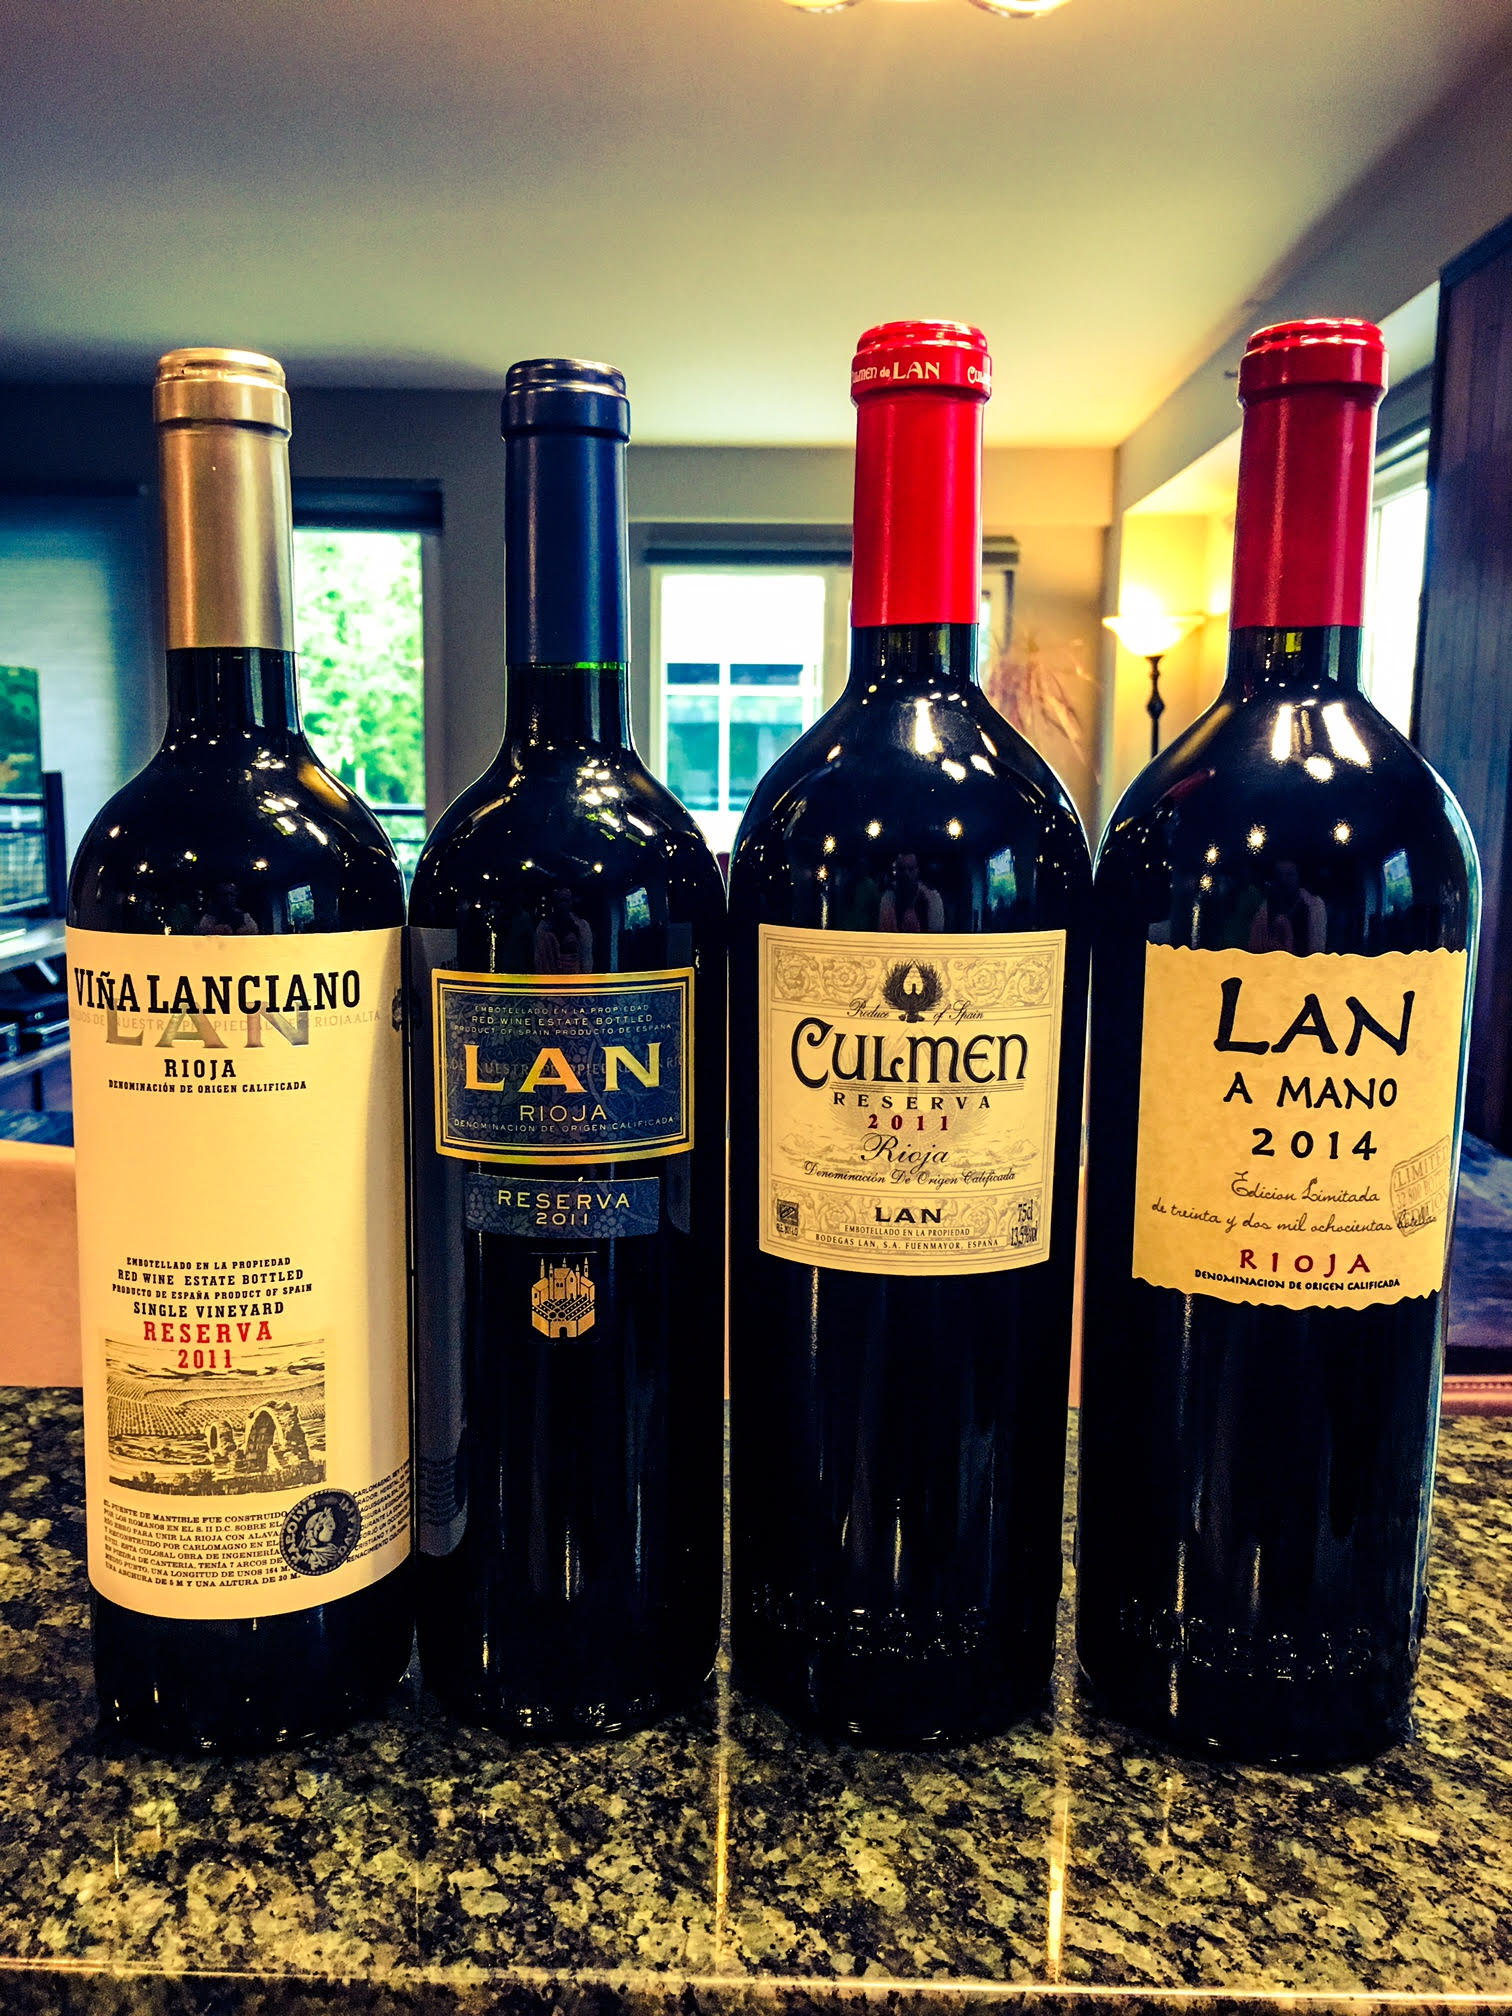 The stunning new release wines by Bodegas LAN